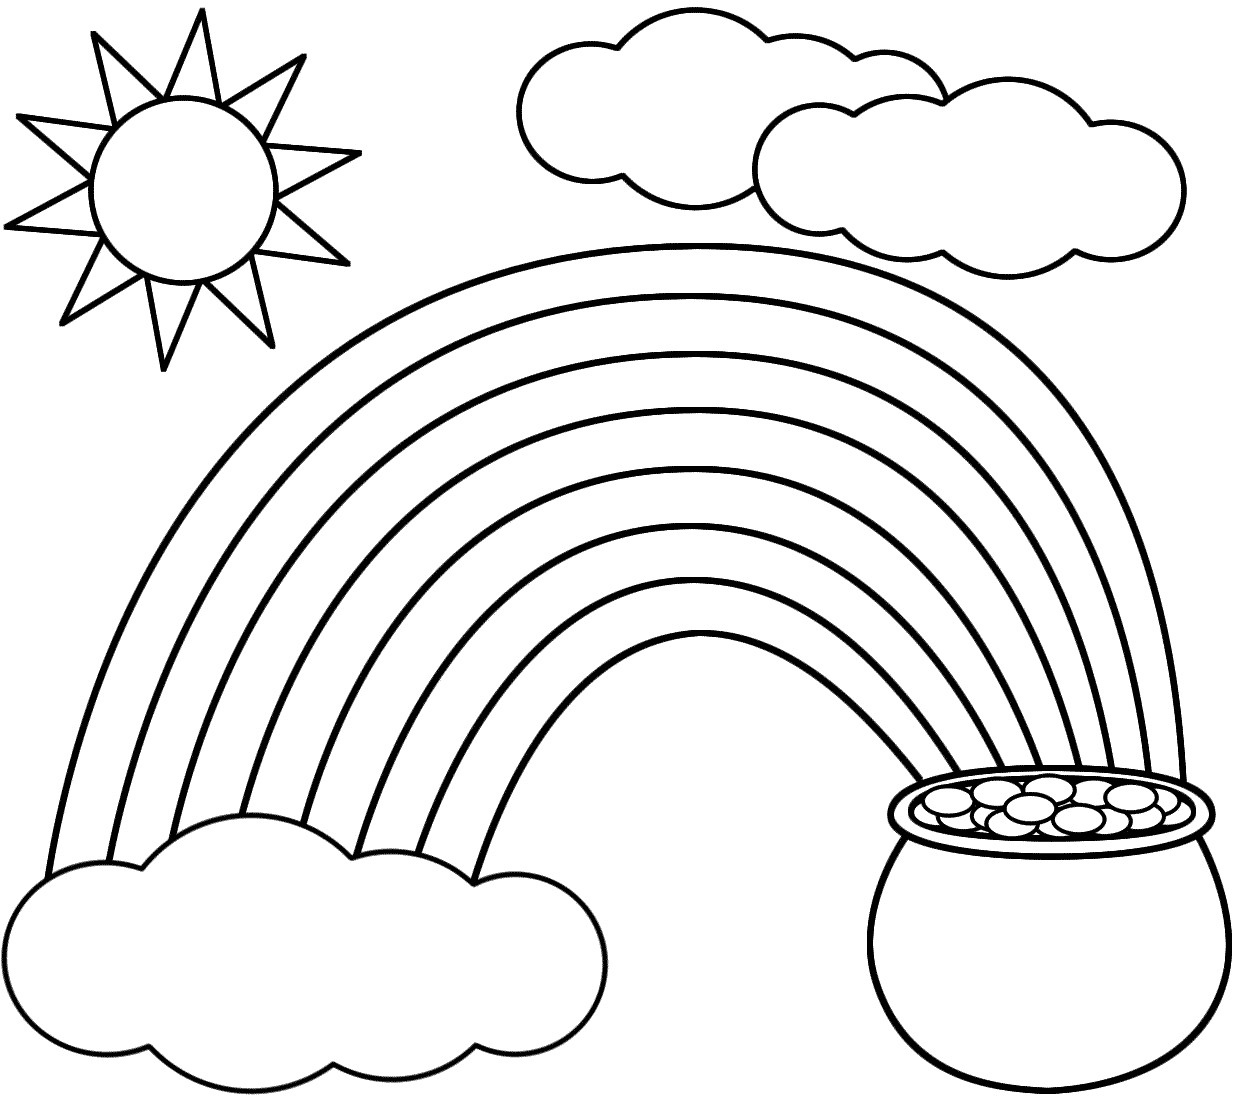 1240x1100 St Patrick S Day Coloring Pages Shamrock Leprechaun Pot Of Gold